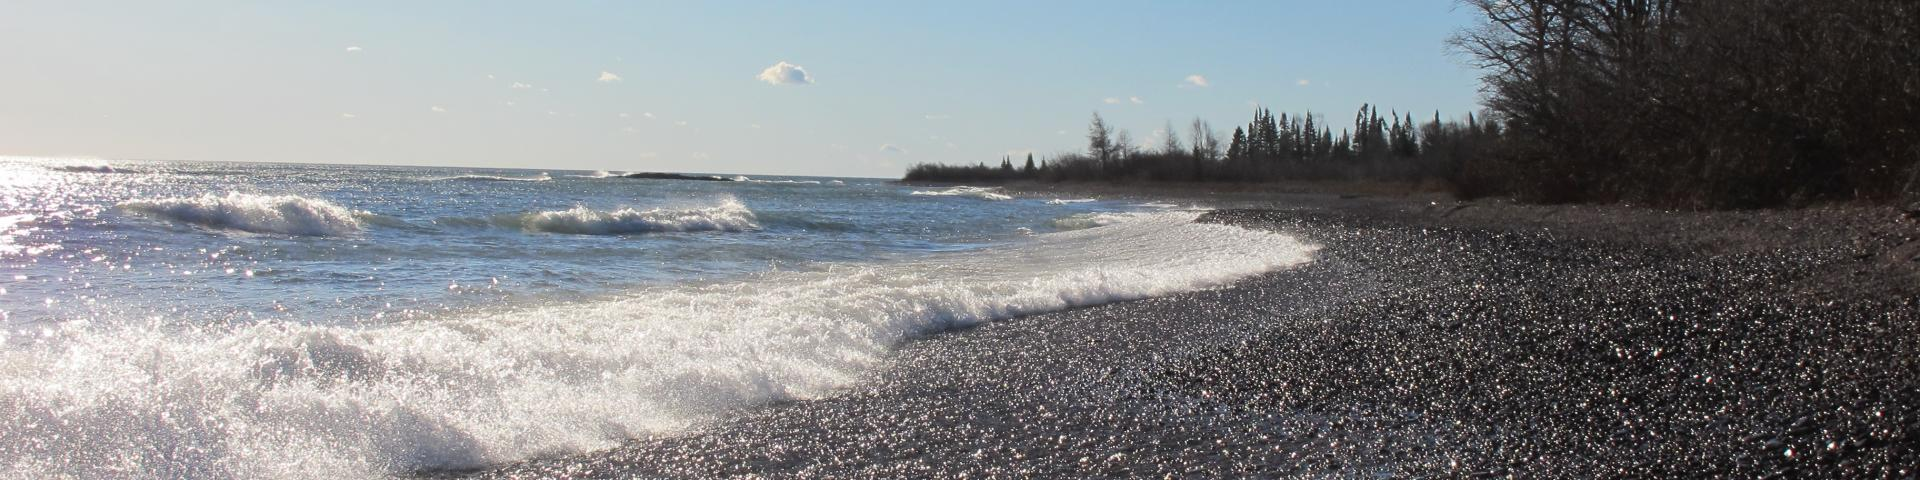 Image of Lake Superior shoreline